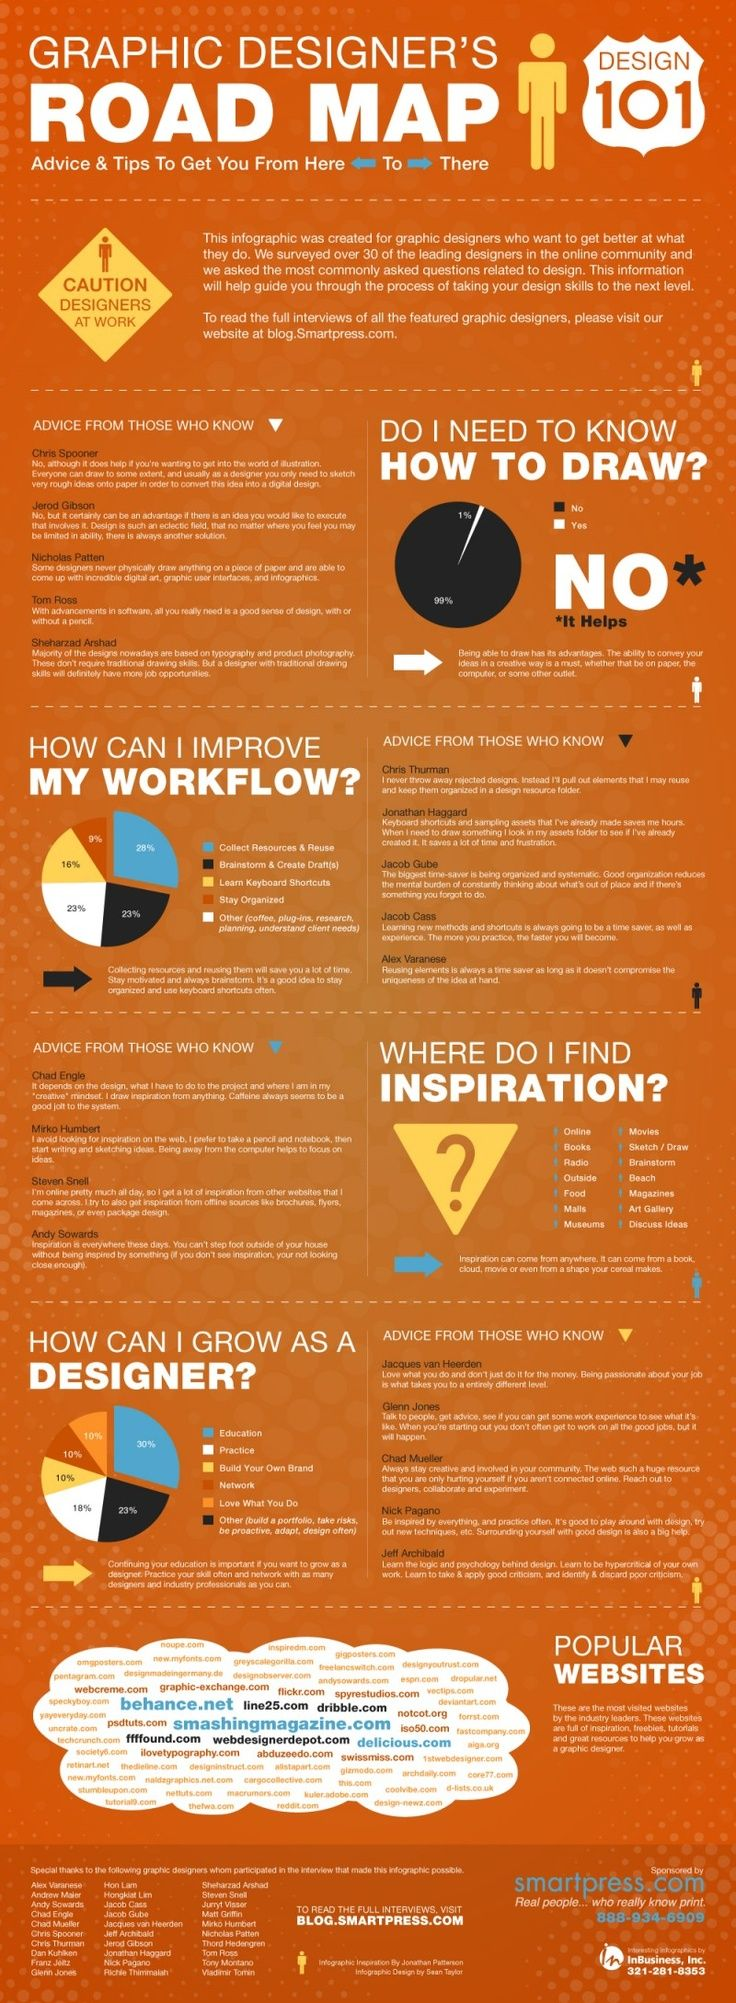 10 Awesome Infographics for Graphic Designers -- The Graphic Designer's ROAD MAP. Advice and tips to get your from here to there: Drawing, Workflow, Inspiration, Websites!